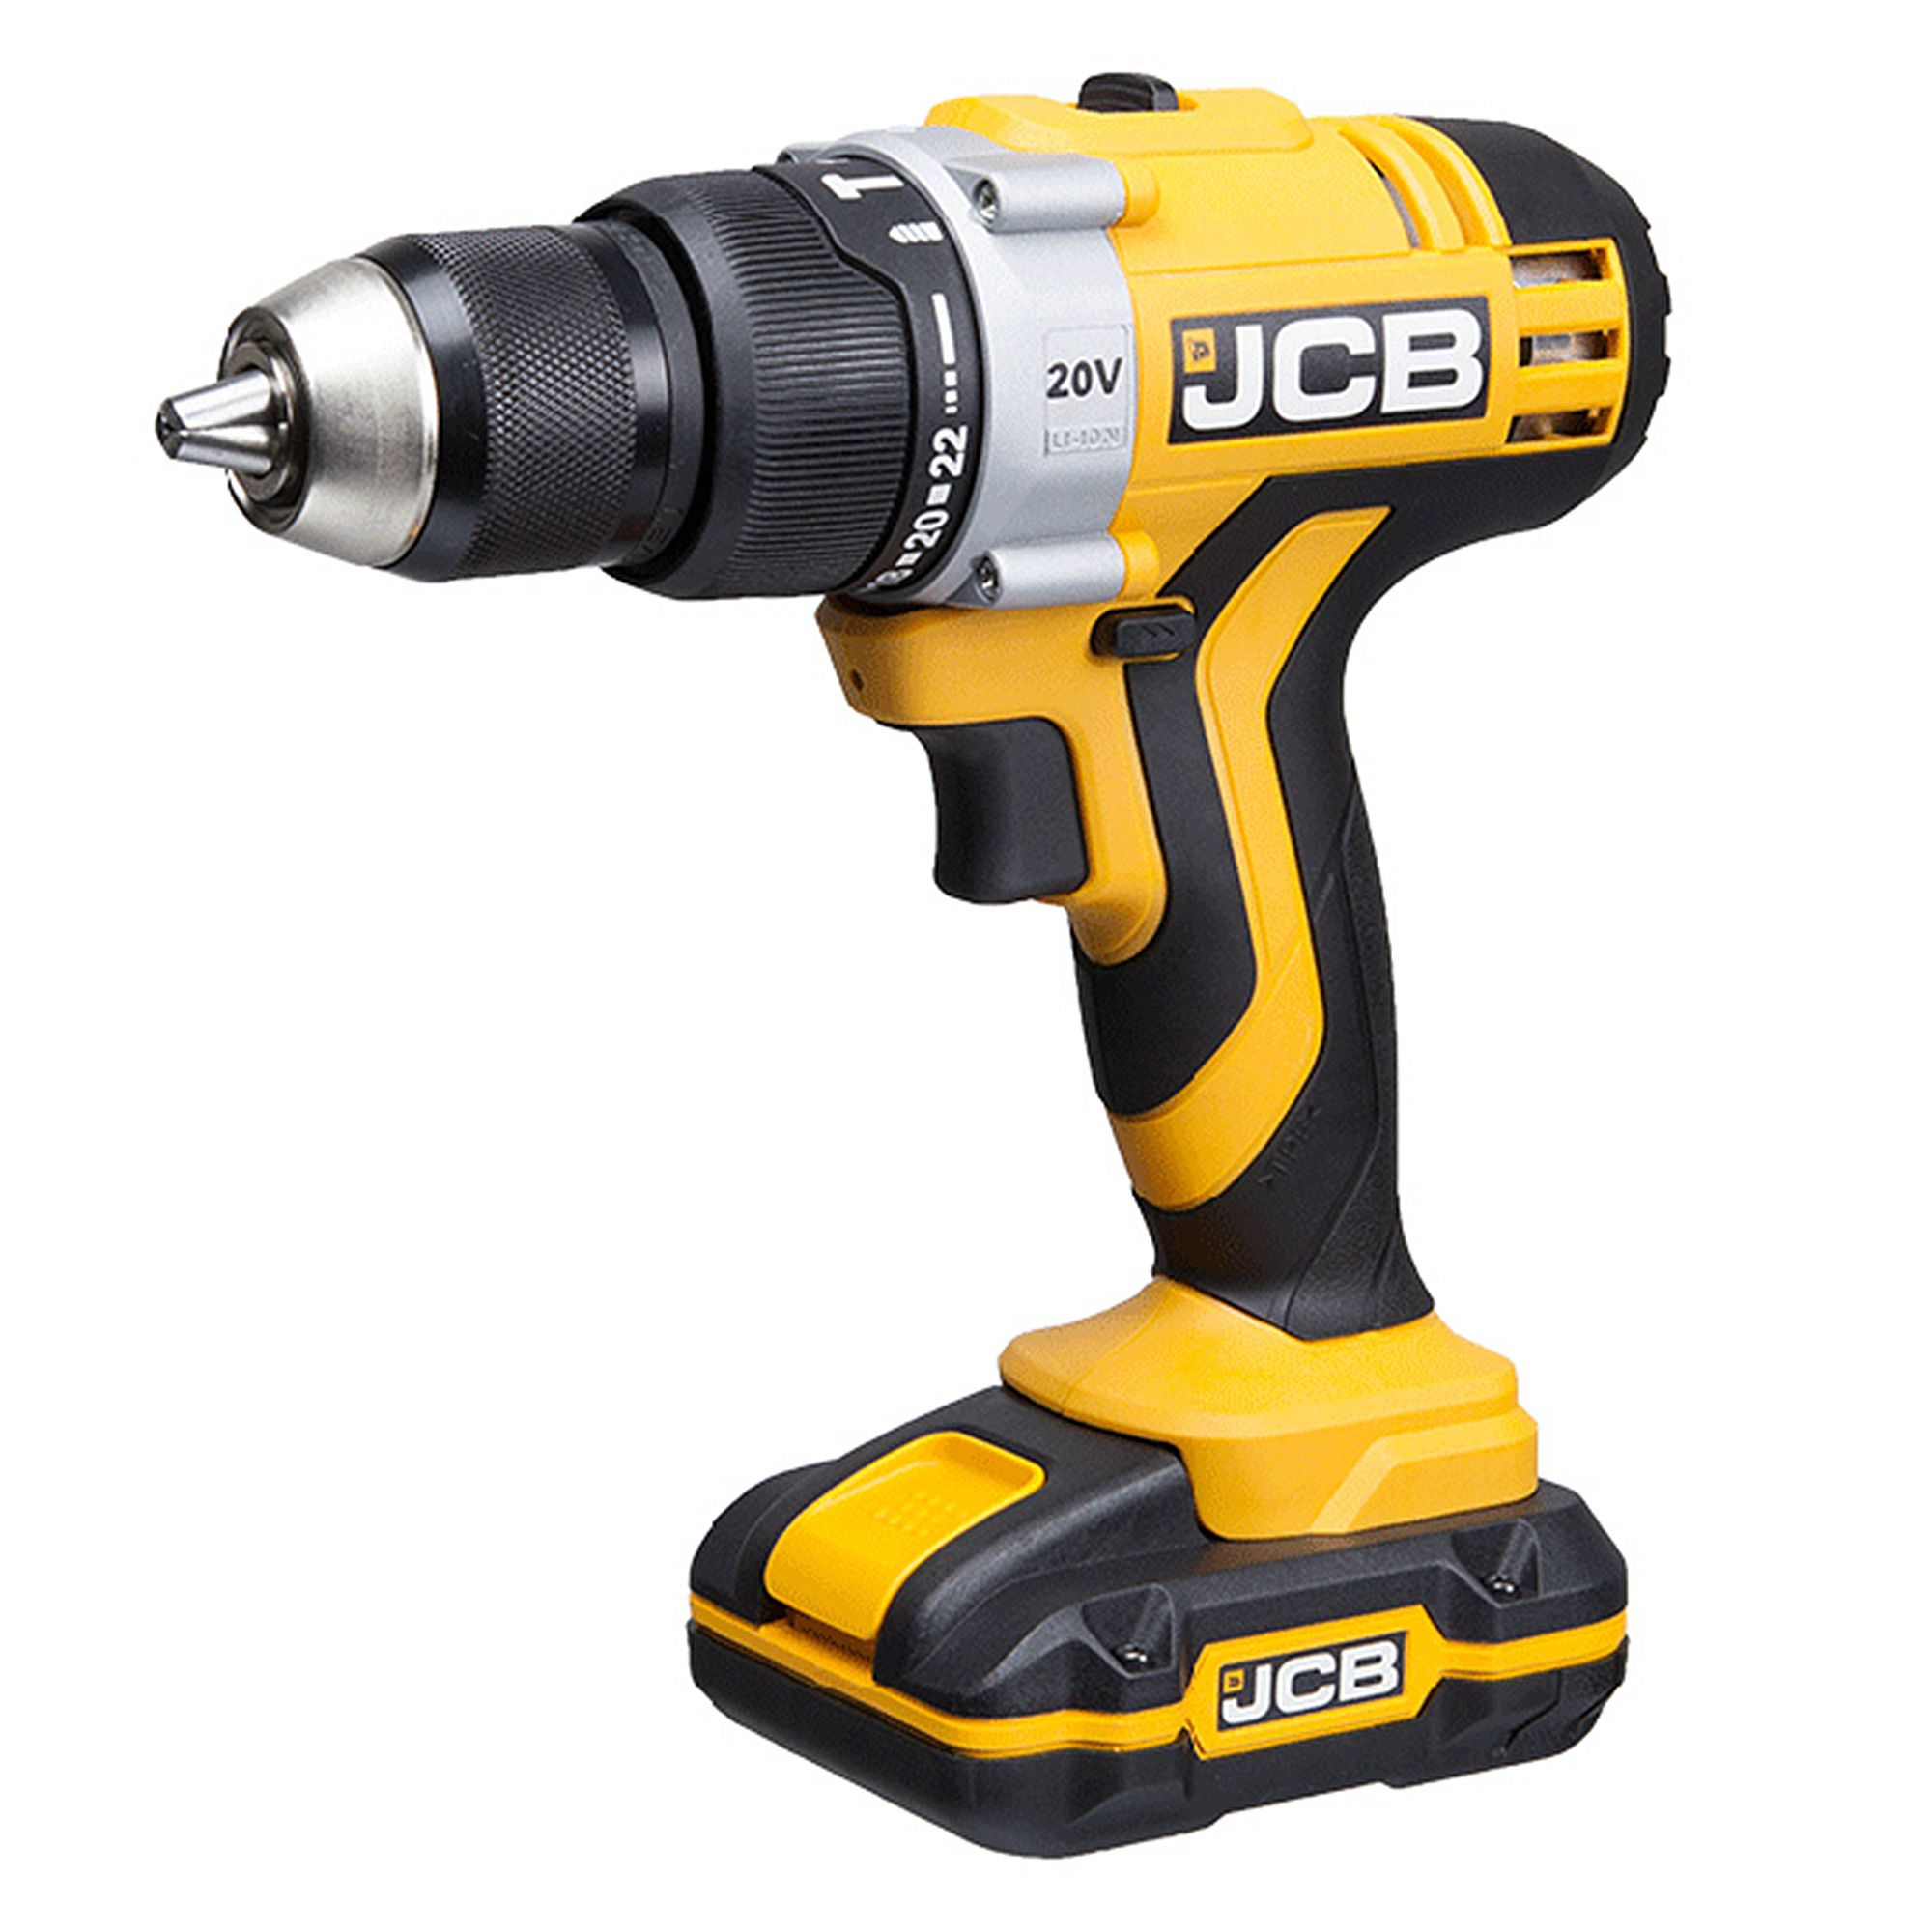 Cordless Drill: reviews, review, rating, advice on choosing 50